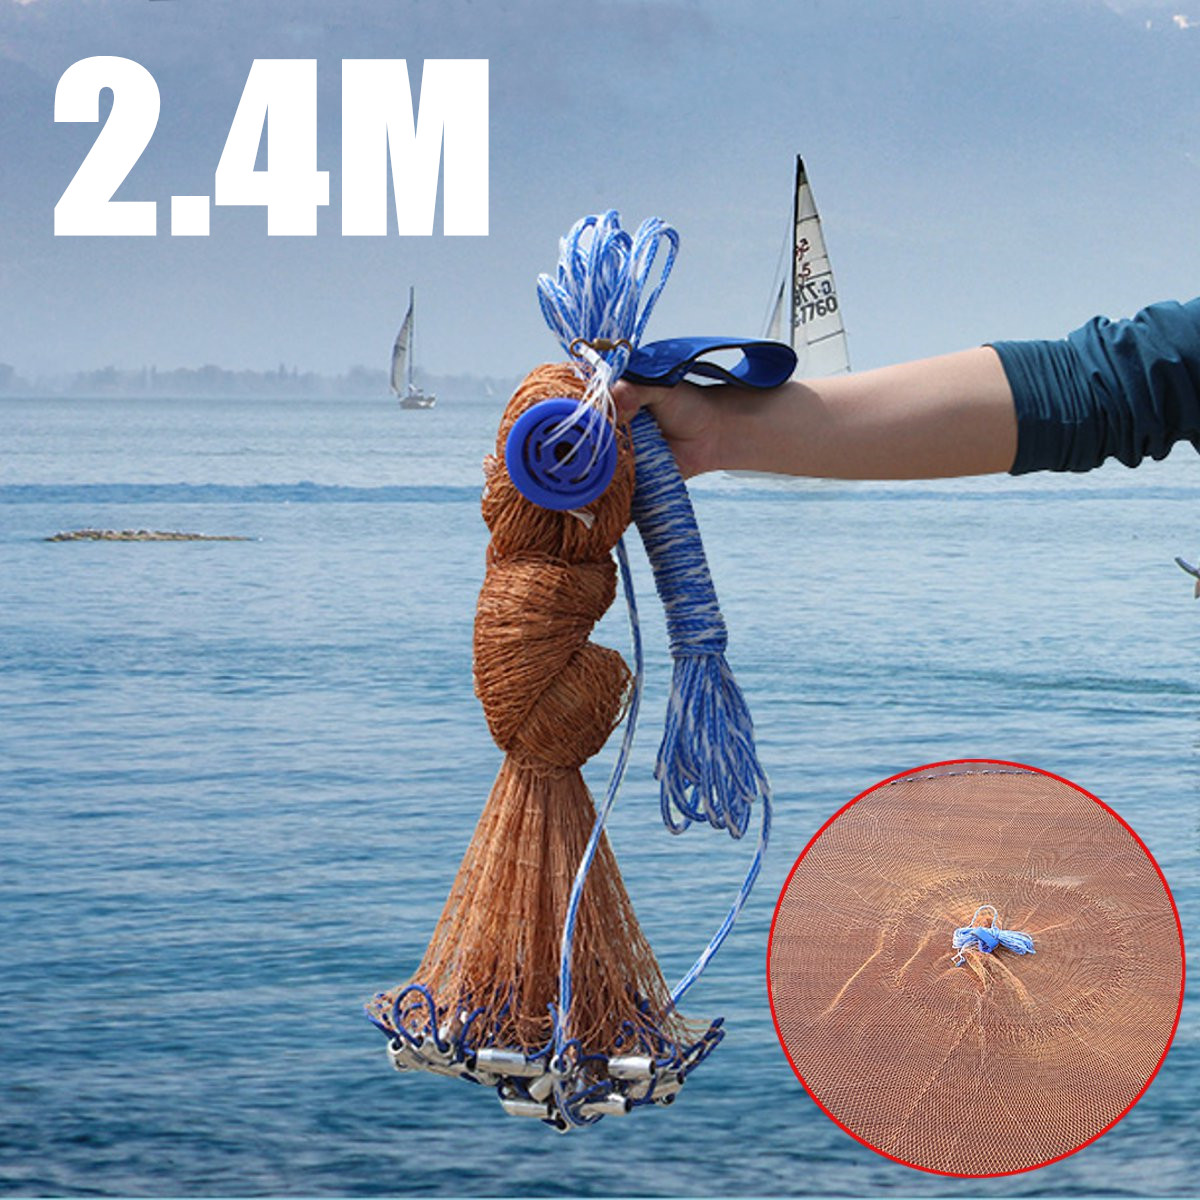 2.4M Cast Net Saltwater Bait Casting Net Catch Fishing Net American Small Mesh Trap Cast Network Fly Hunting Hand Throw Nets